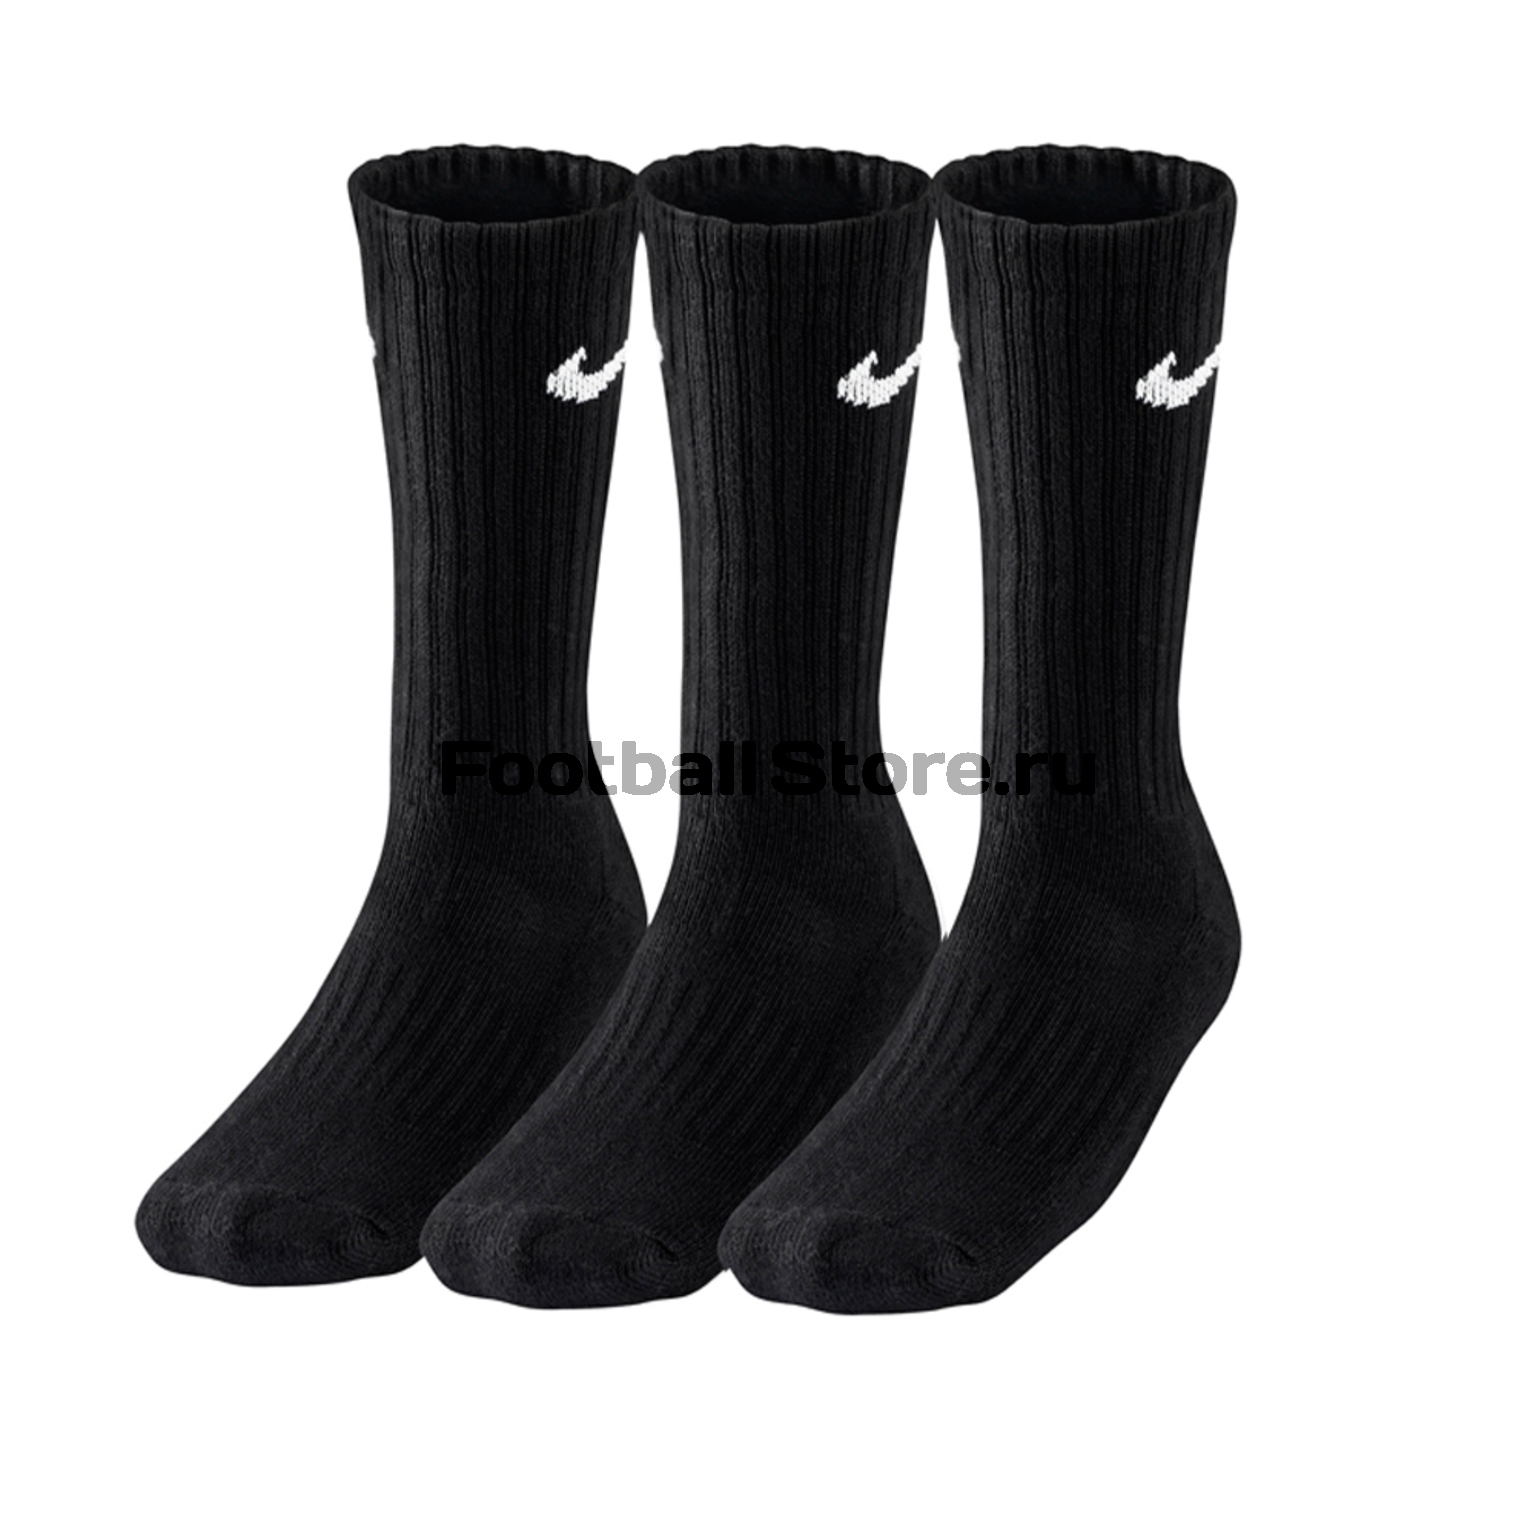 Комплект носков Nike 3ppk Value Cotton Crew SX4508-001 комплект носков nike 3ppk value cotton crew smlx sx4508 101